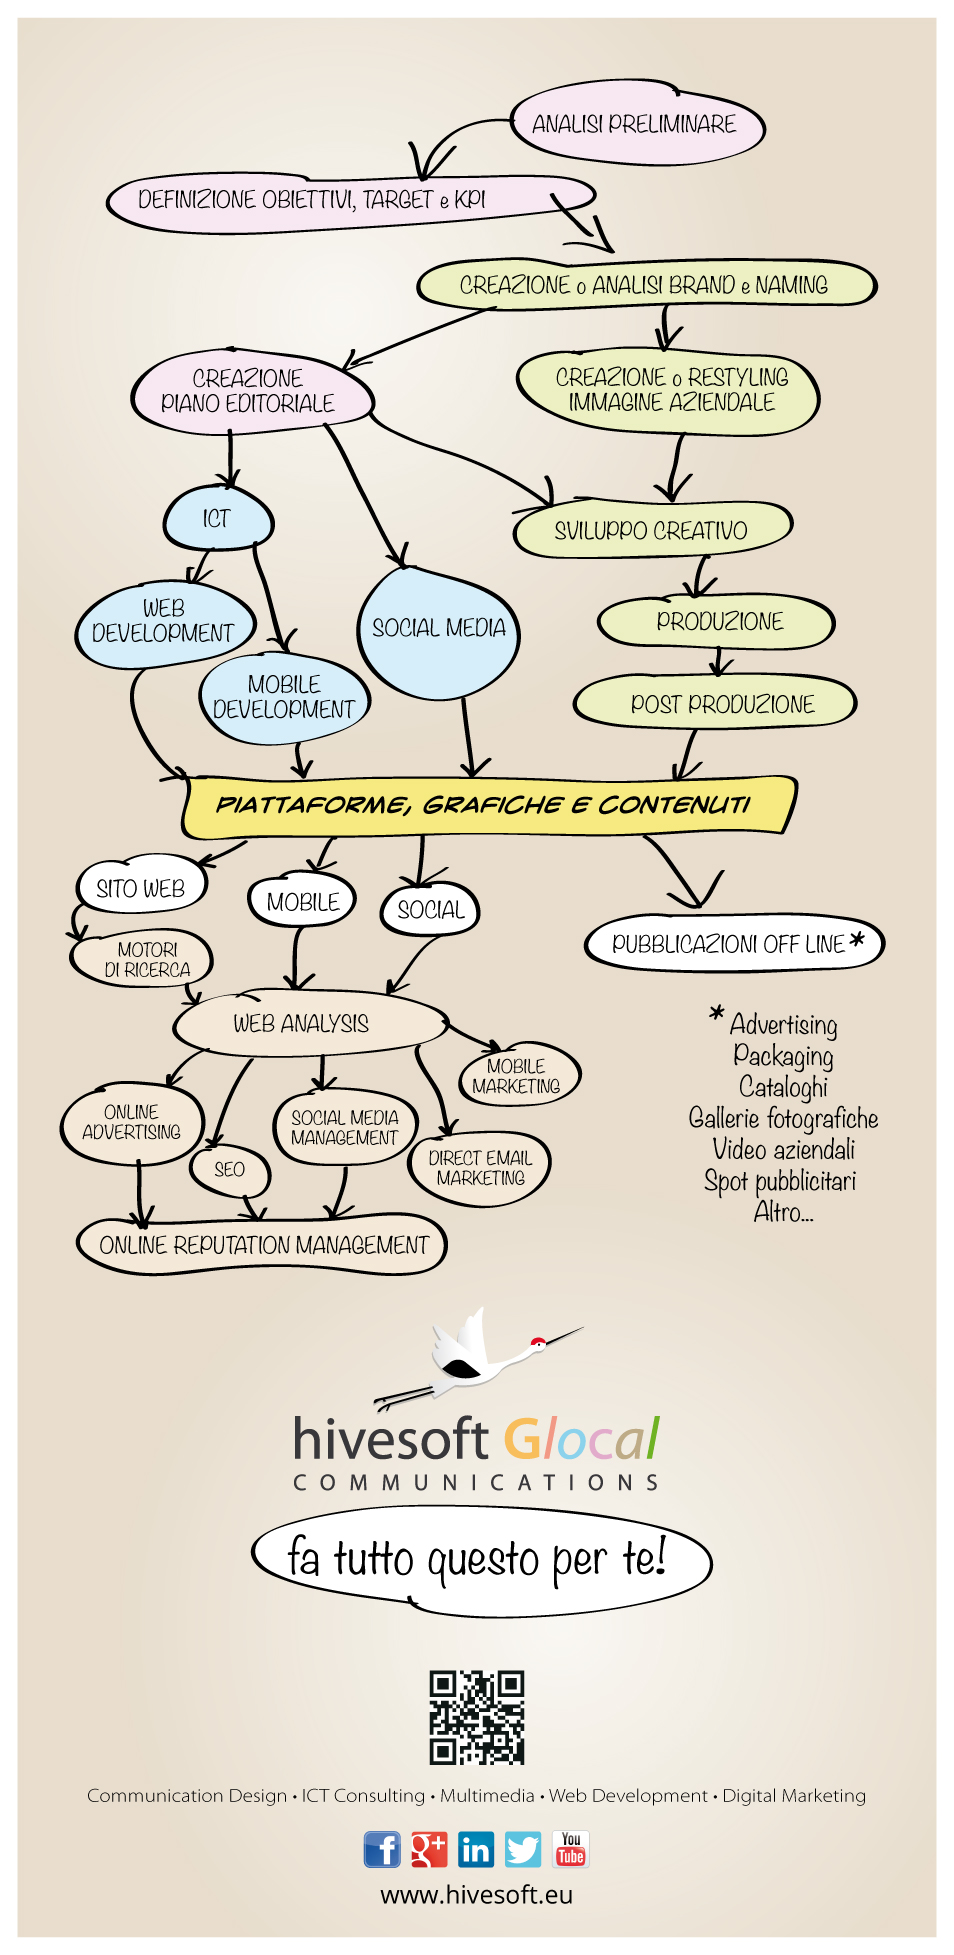 Infografica soluzione di comunicazione web e marketing 2.0 hivesoft Glocal Communications